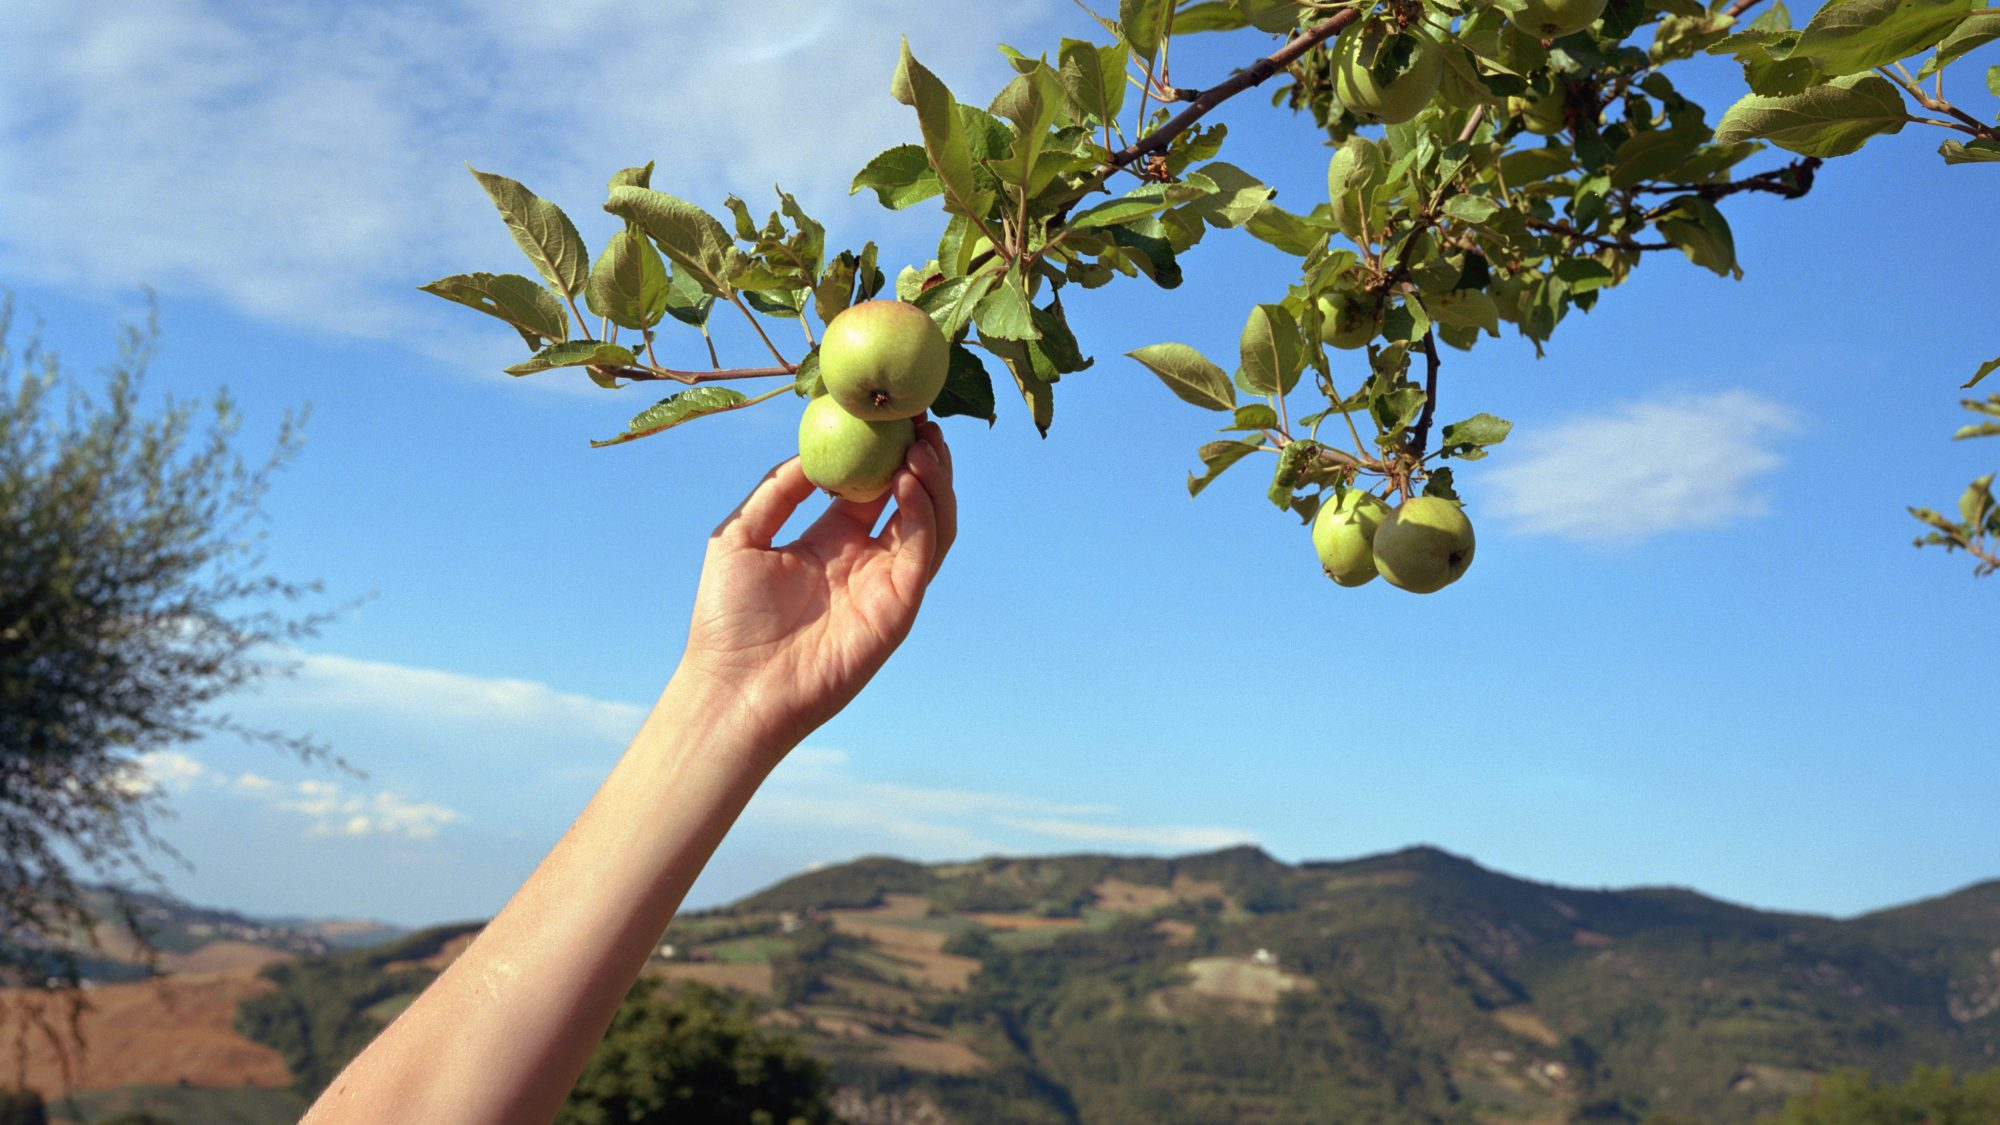 Fall activities, fun things to do in the fall during coronavirus/covid - apple picking